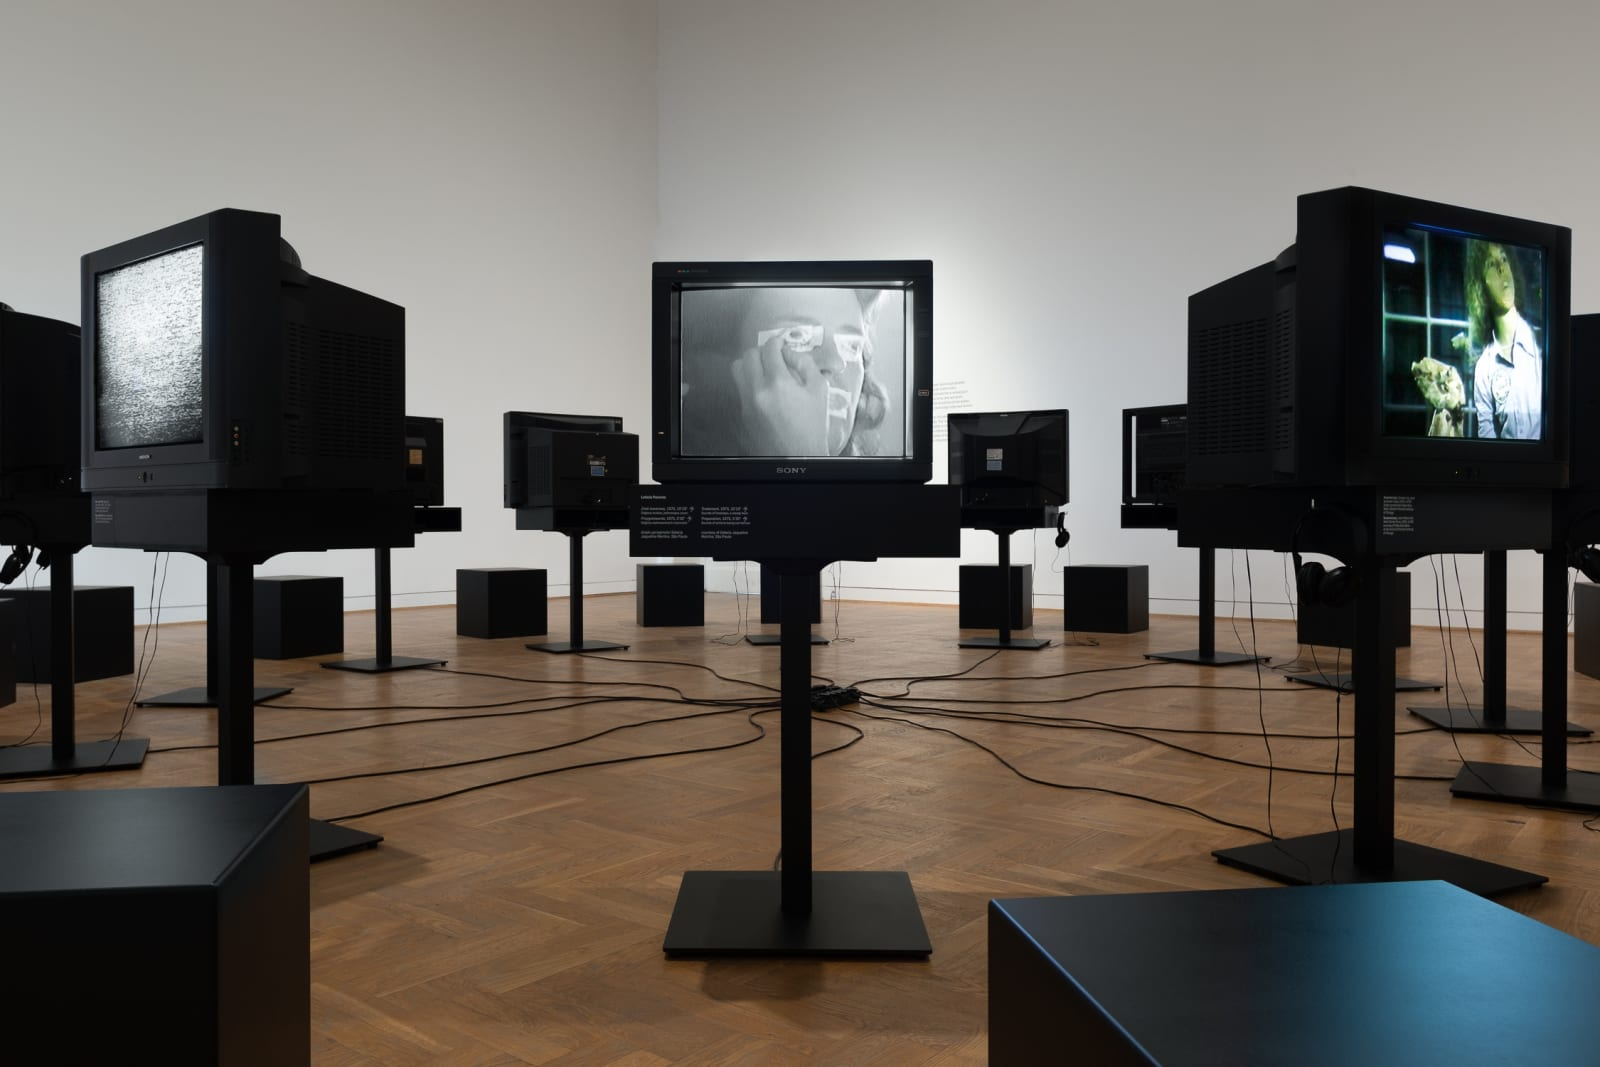 Exhibition view: Videotapes. Early Video Art (1965–1976) at the Zachęta National Gallery of Art (Warsaw, Poland)